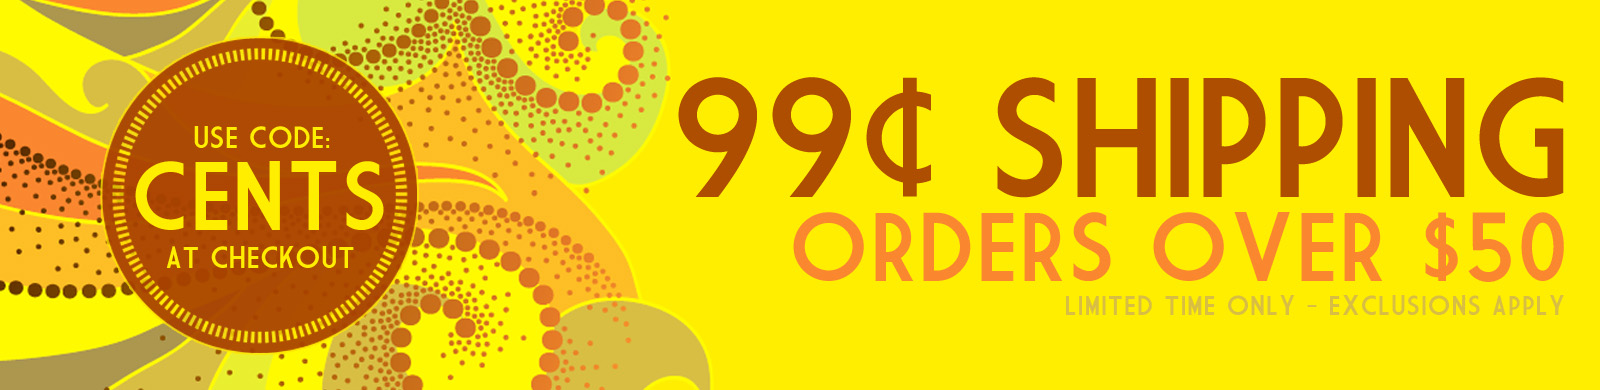 99 Cent Shipping on Orders Over $50